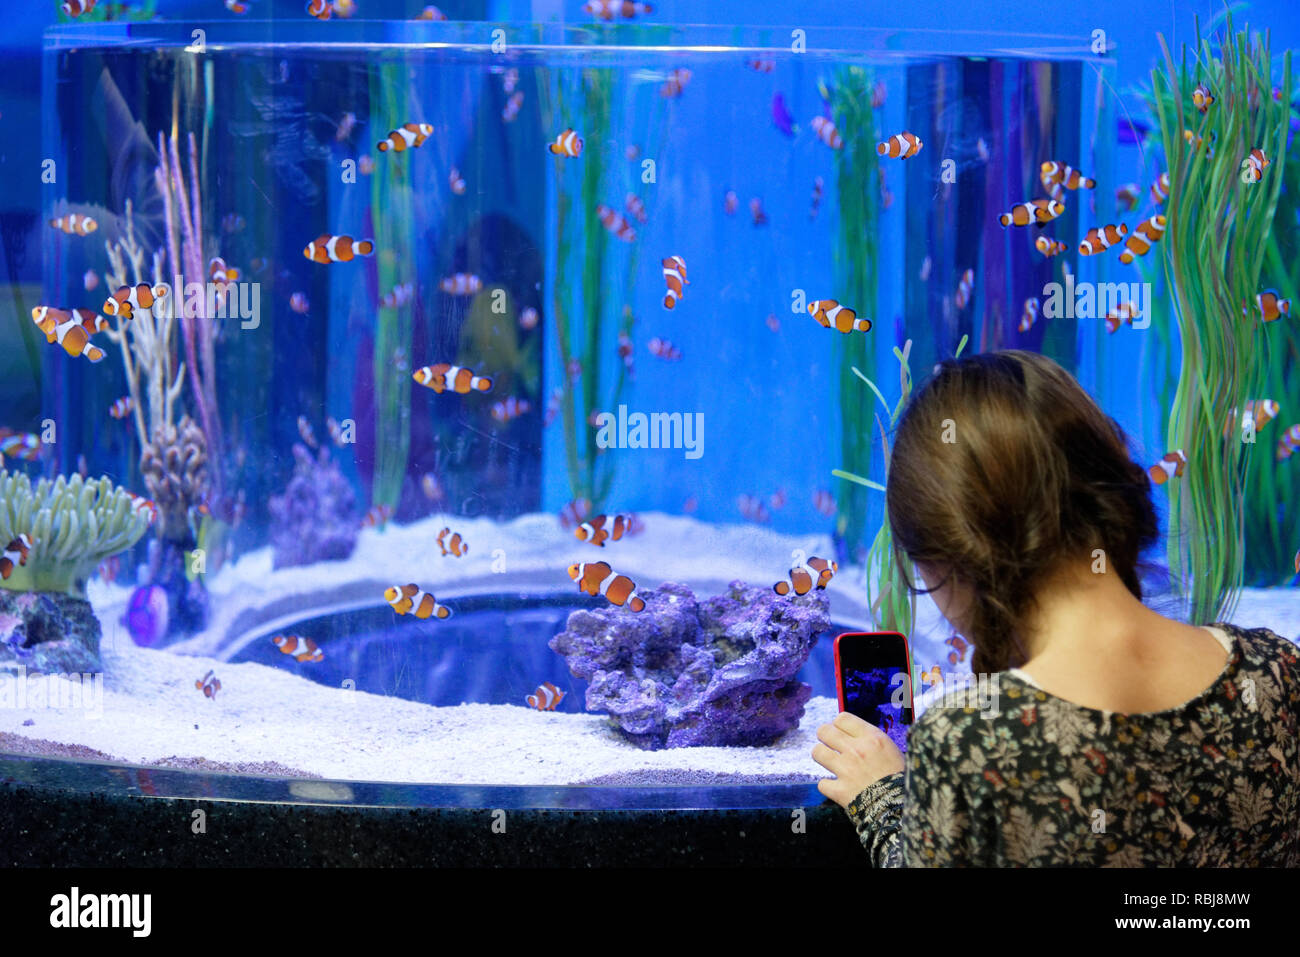 A young girl (8yrs old) taking photos of clownfish with a cellphone inside Ripley's Aquarium of Canada, Toronto, Ontario - Stock Image